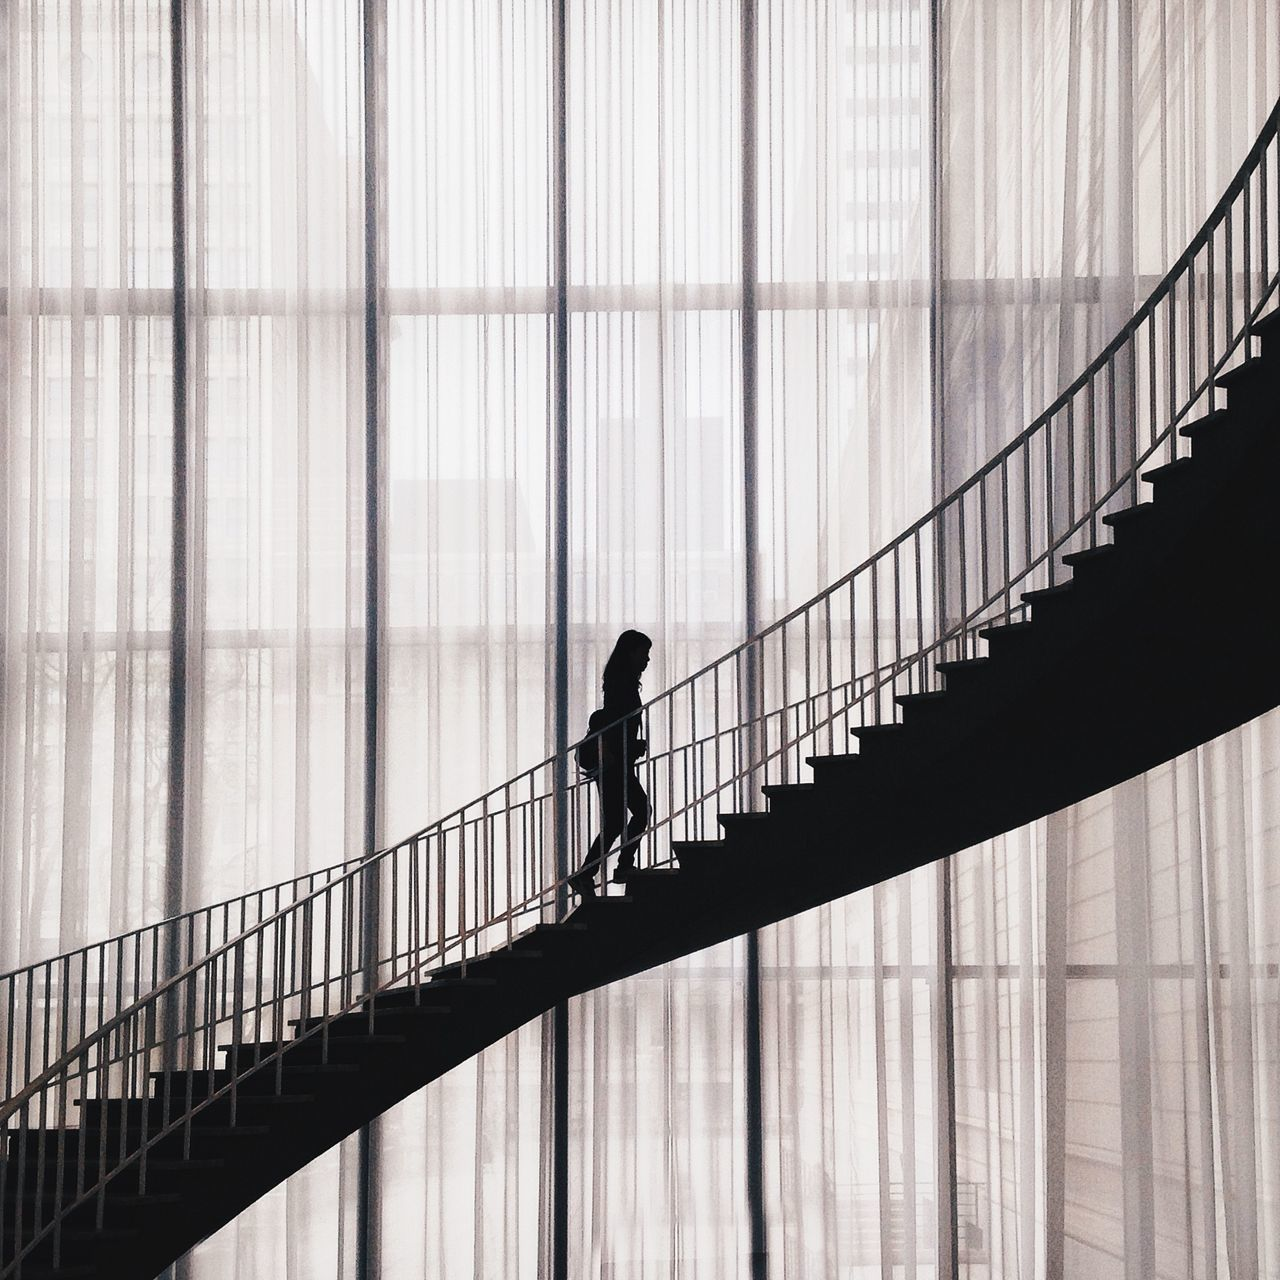 Silhouette Woman Walking On Staircase In Building